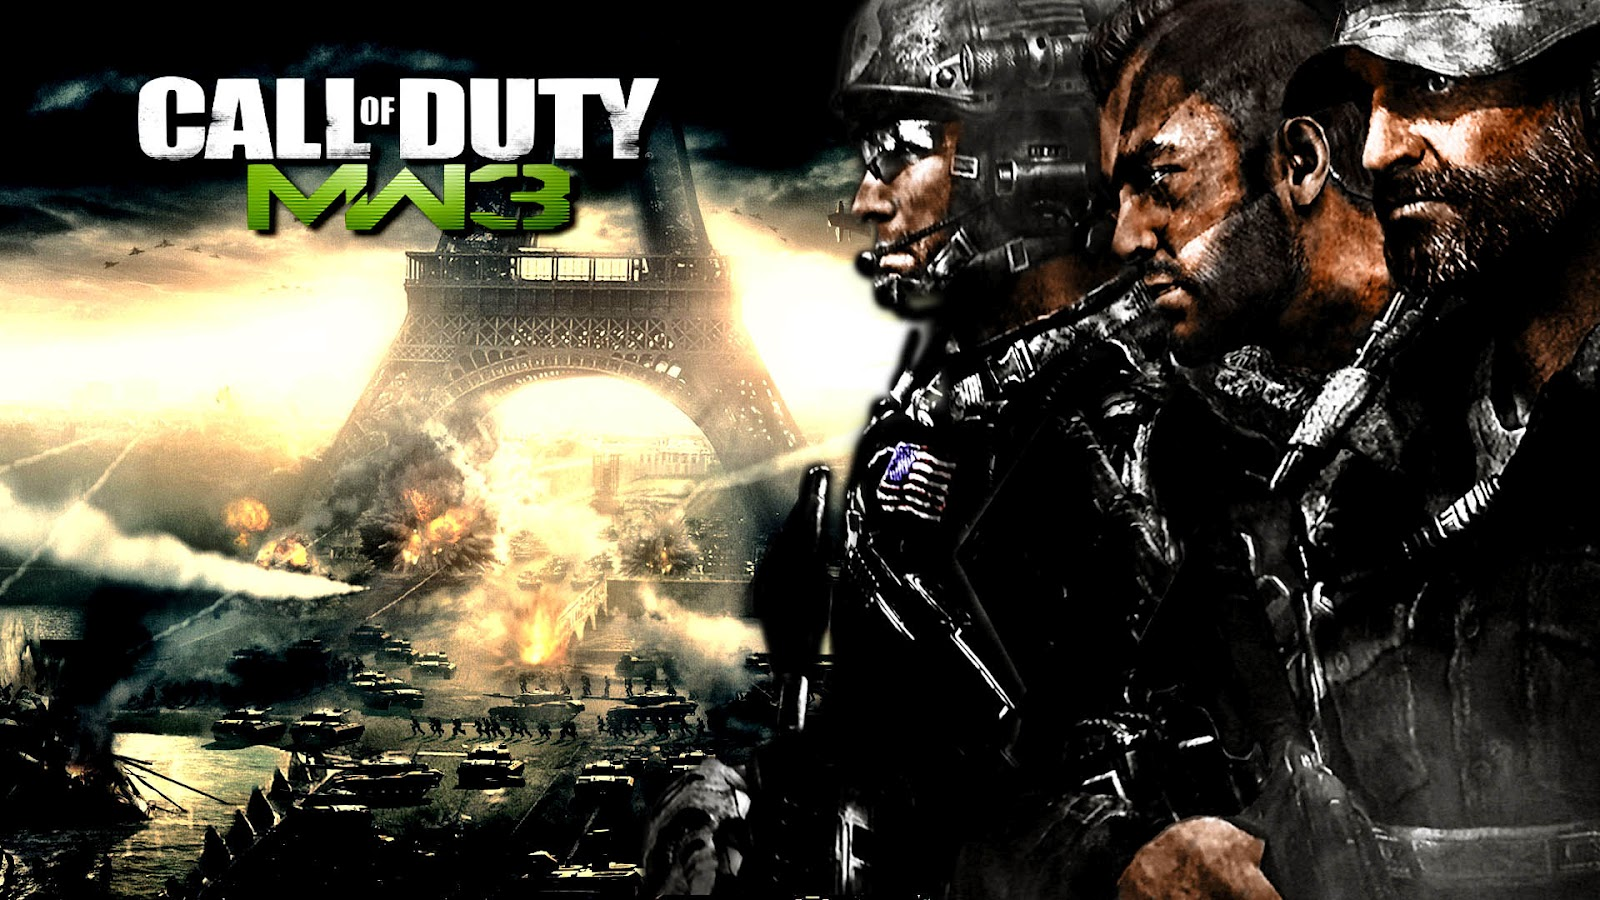 http://2.bp.blogspot.com/-KwnoaWw0ENk/UBCepMQgHTI/AAAAAAAABoE/8nJ3uc4oKOs/s1600/Call_of_Duty_Modern_Warfare_3_Wallpapers_-_1920x1080_-_0097.jpg